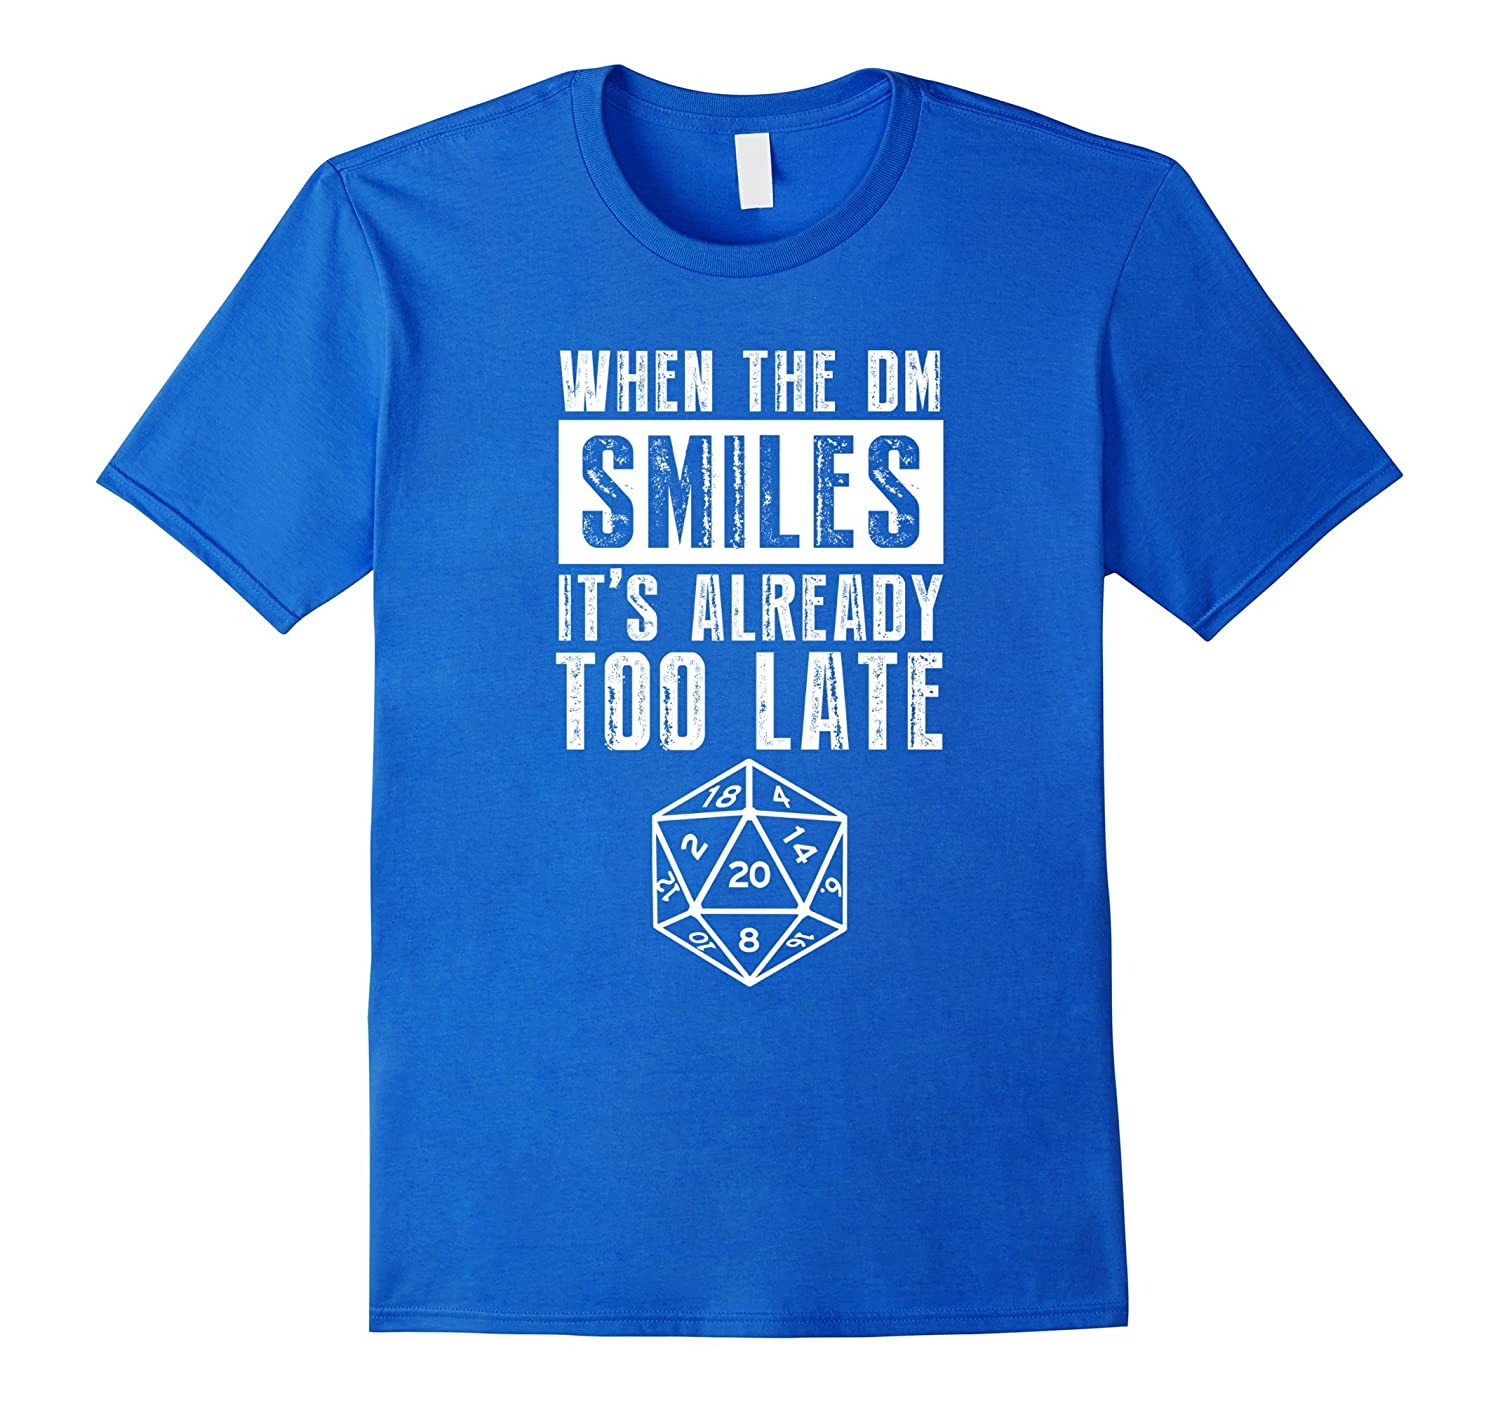 20 Sided Dice T Shirt When The DM Smiles It's Already Too La-TH